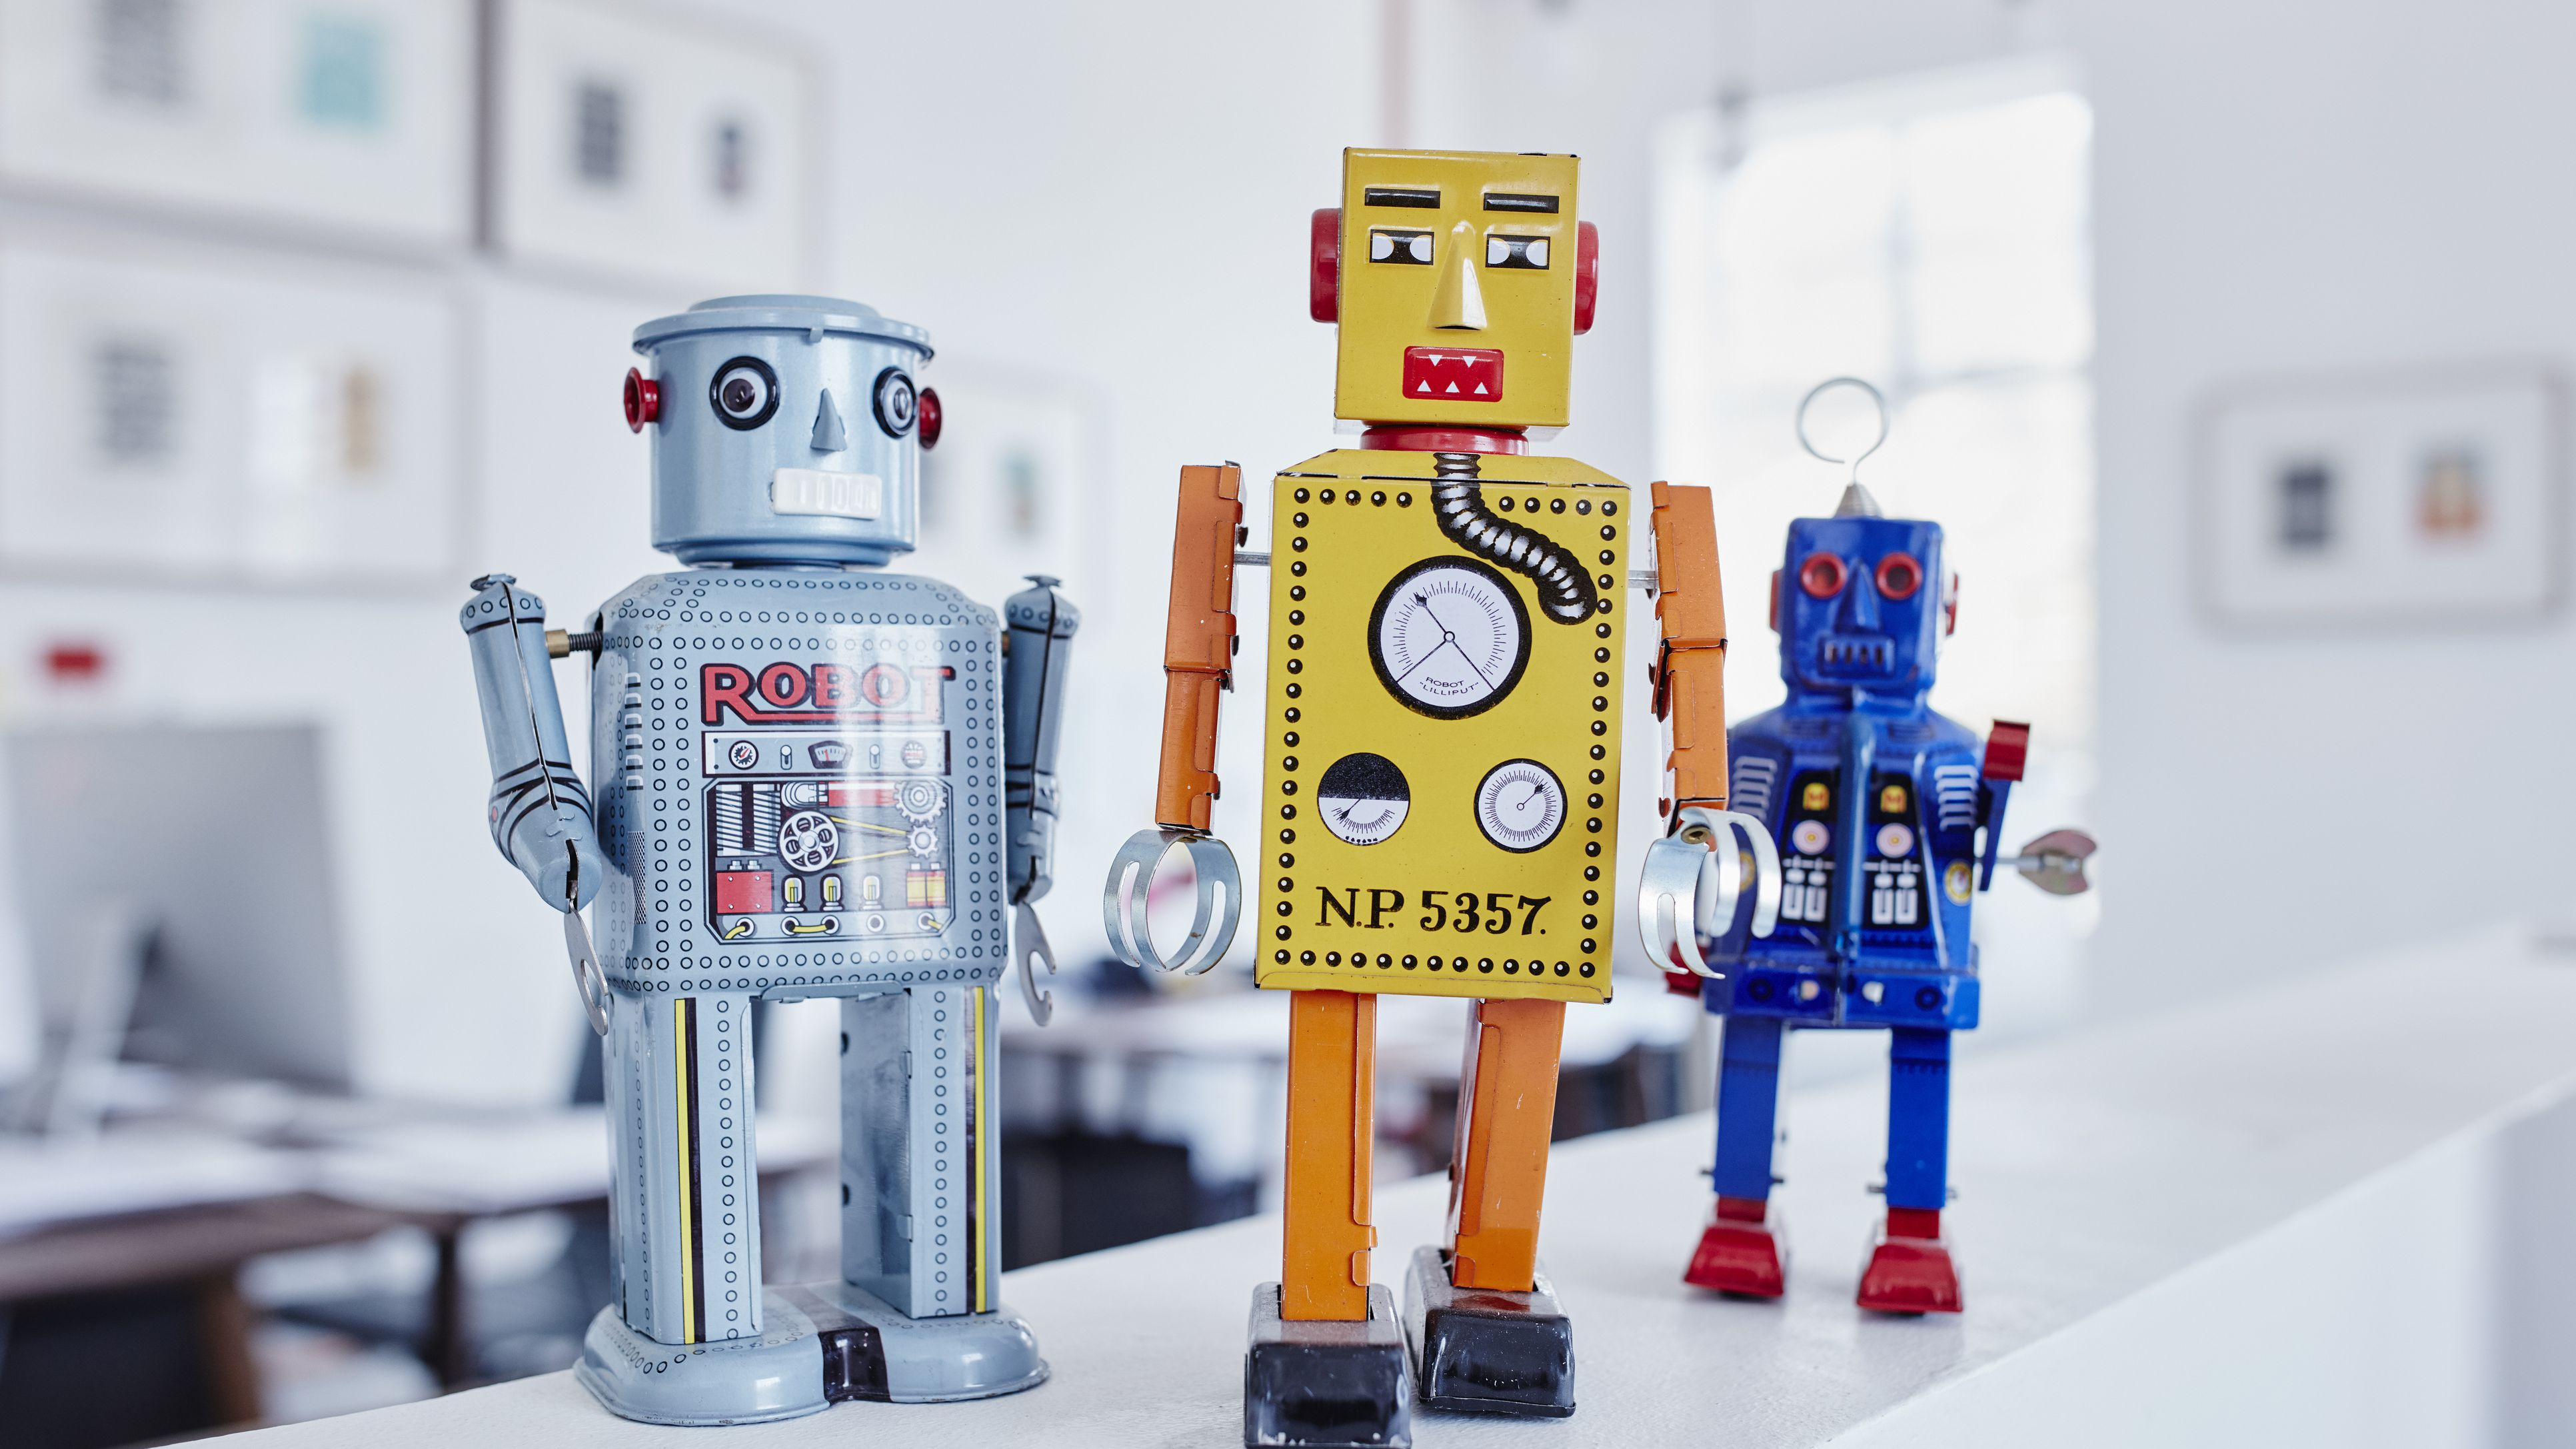 Best Robot Toys 2020 The 8 Best Robot Toys of 2019